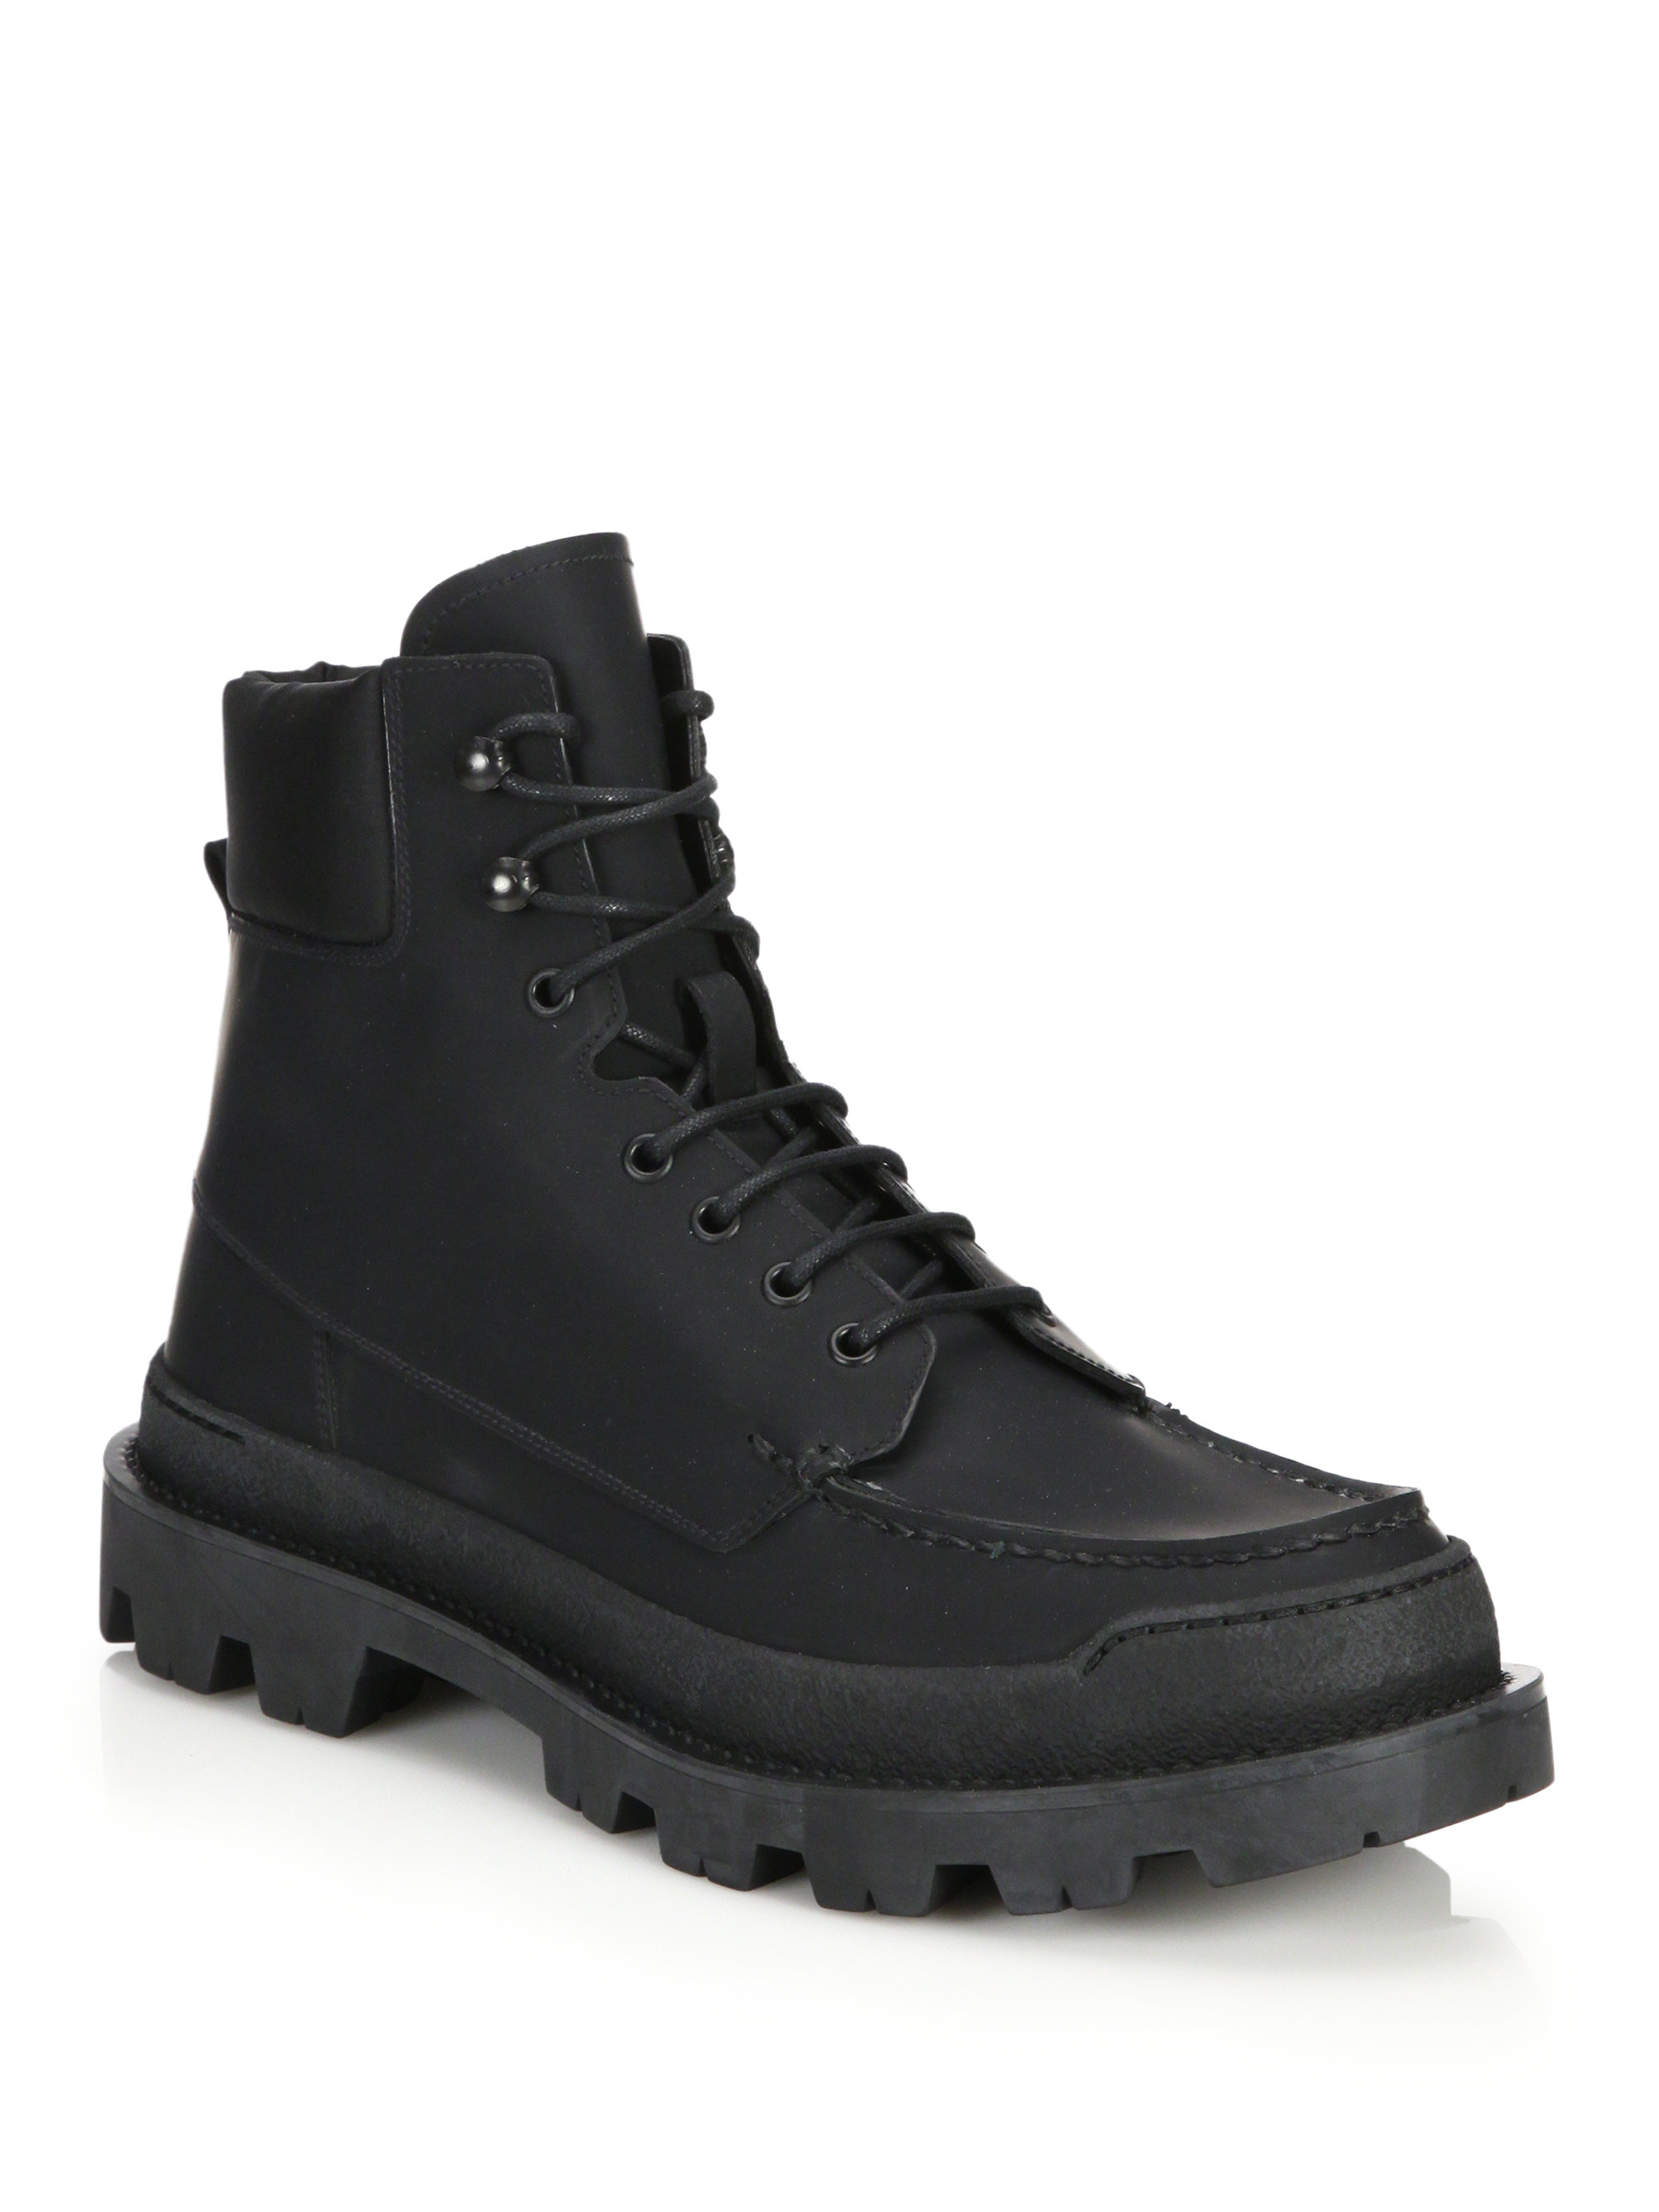 Prada Lug Sole Leather Hiking Boots in Black for Men | Lyst